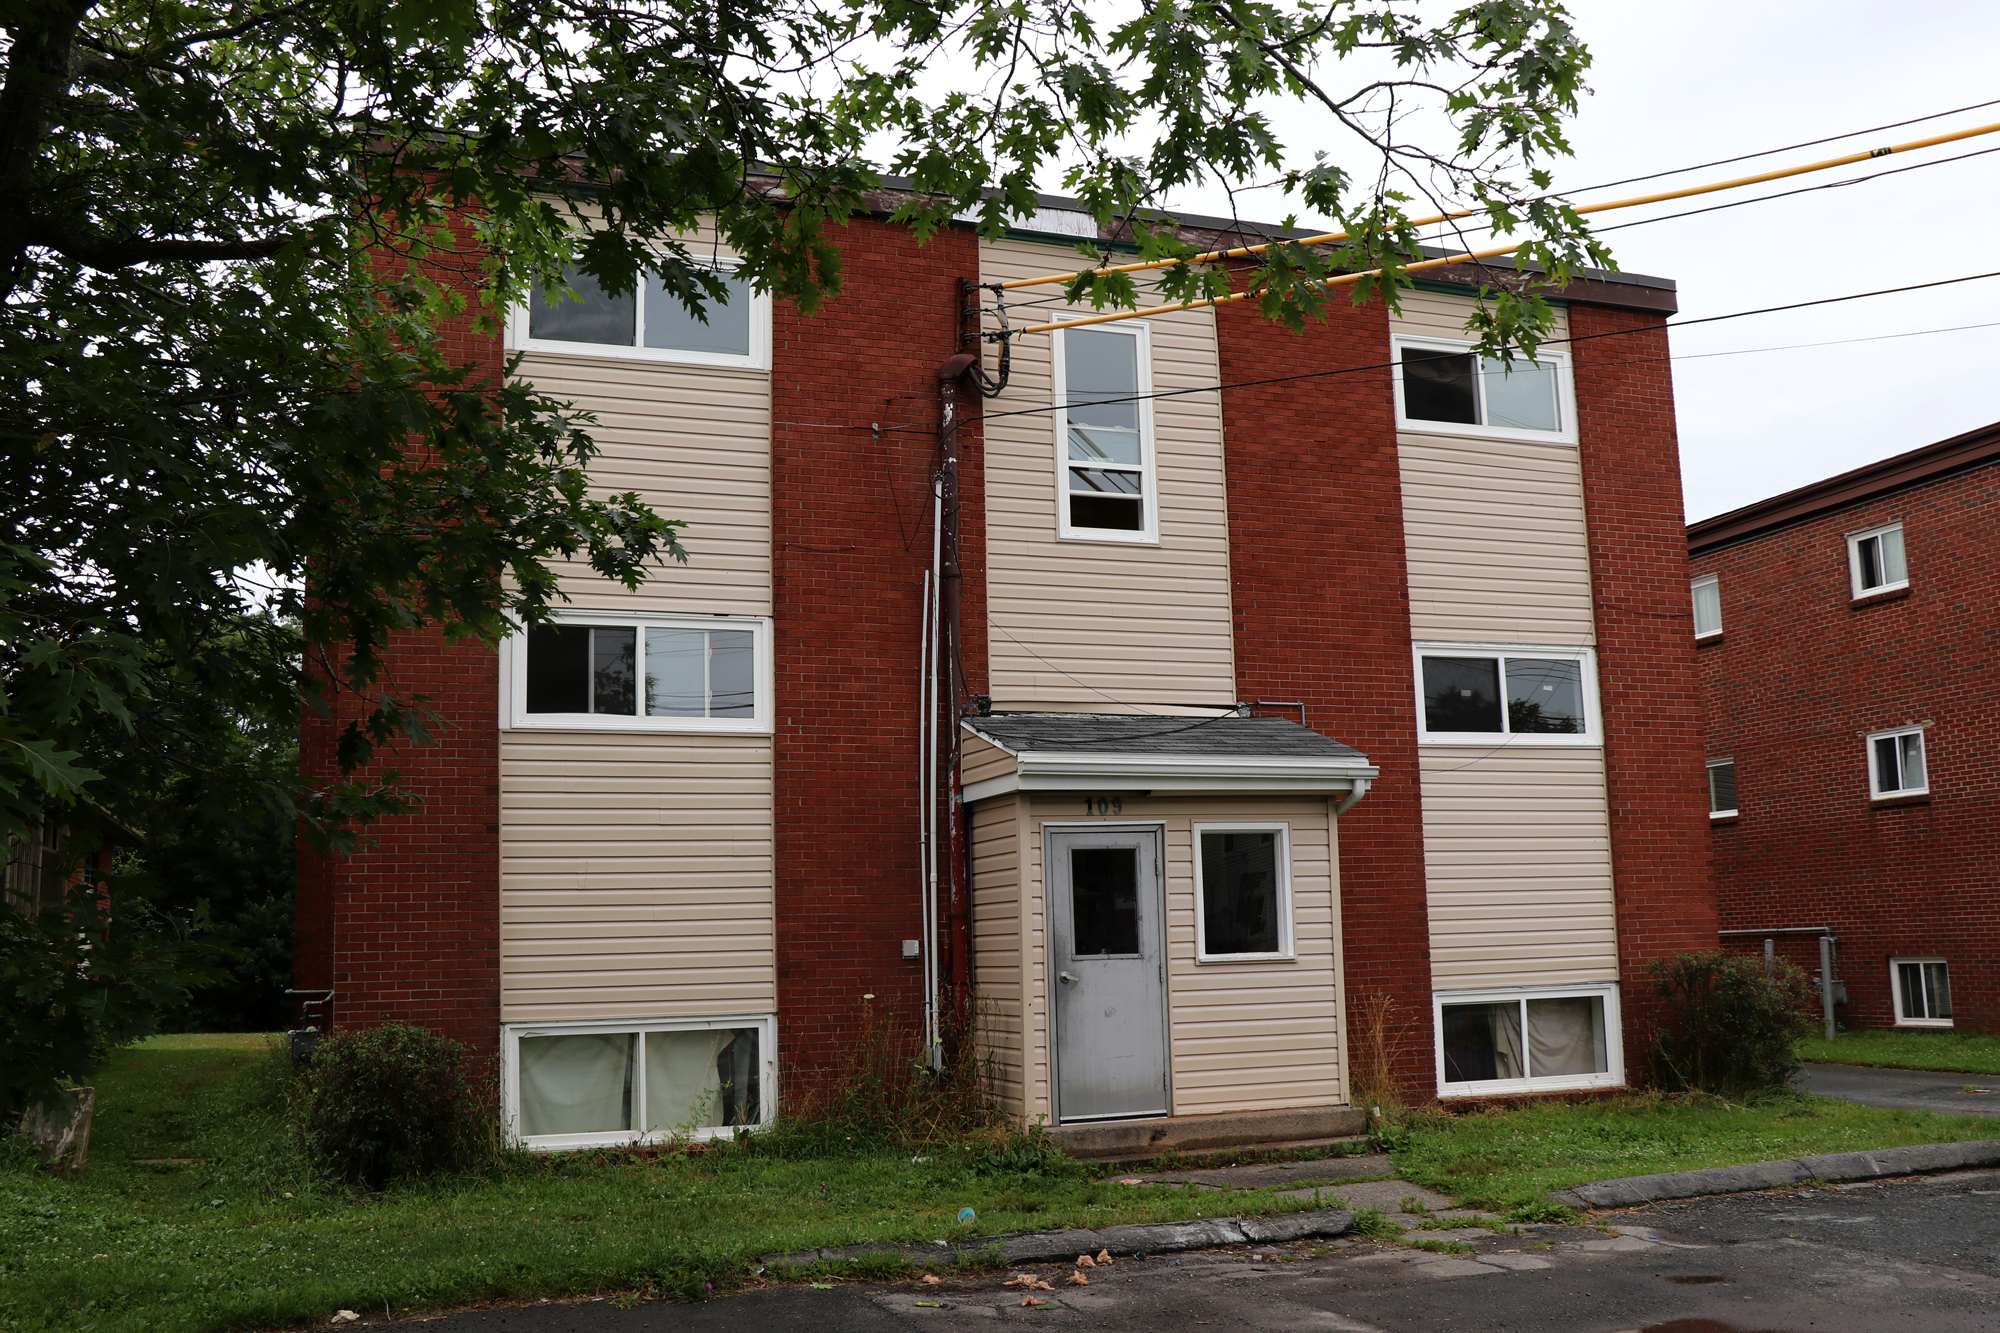 In November 1995, Brenda Way was found dead outside this low-rise apartment building in Dartmouth. (Robert Guertin/CBC)